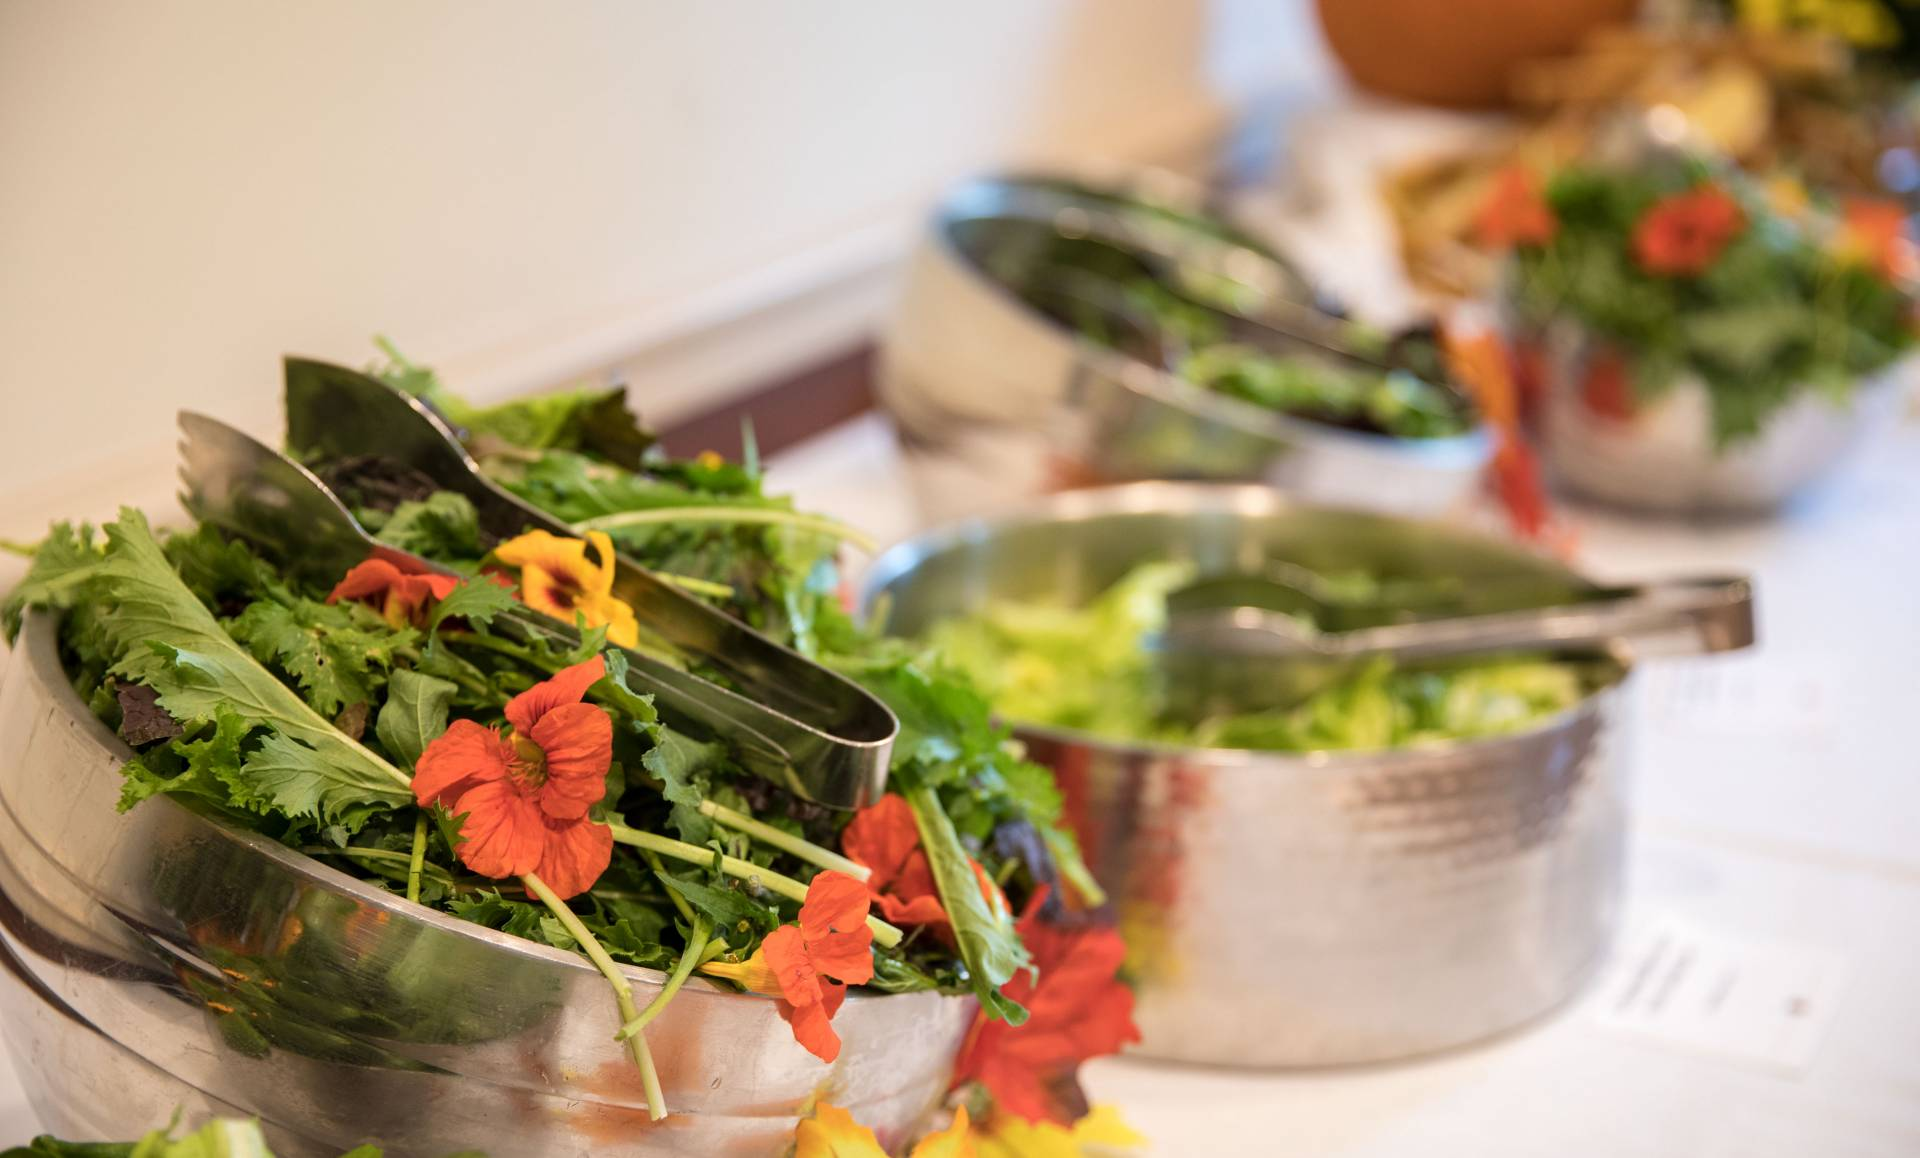 Edible flowers and greens from Vertical Farming and Forbes Garden